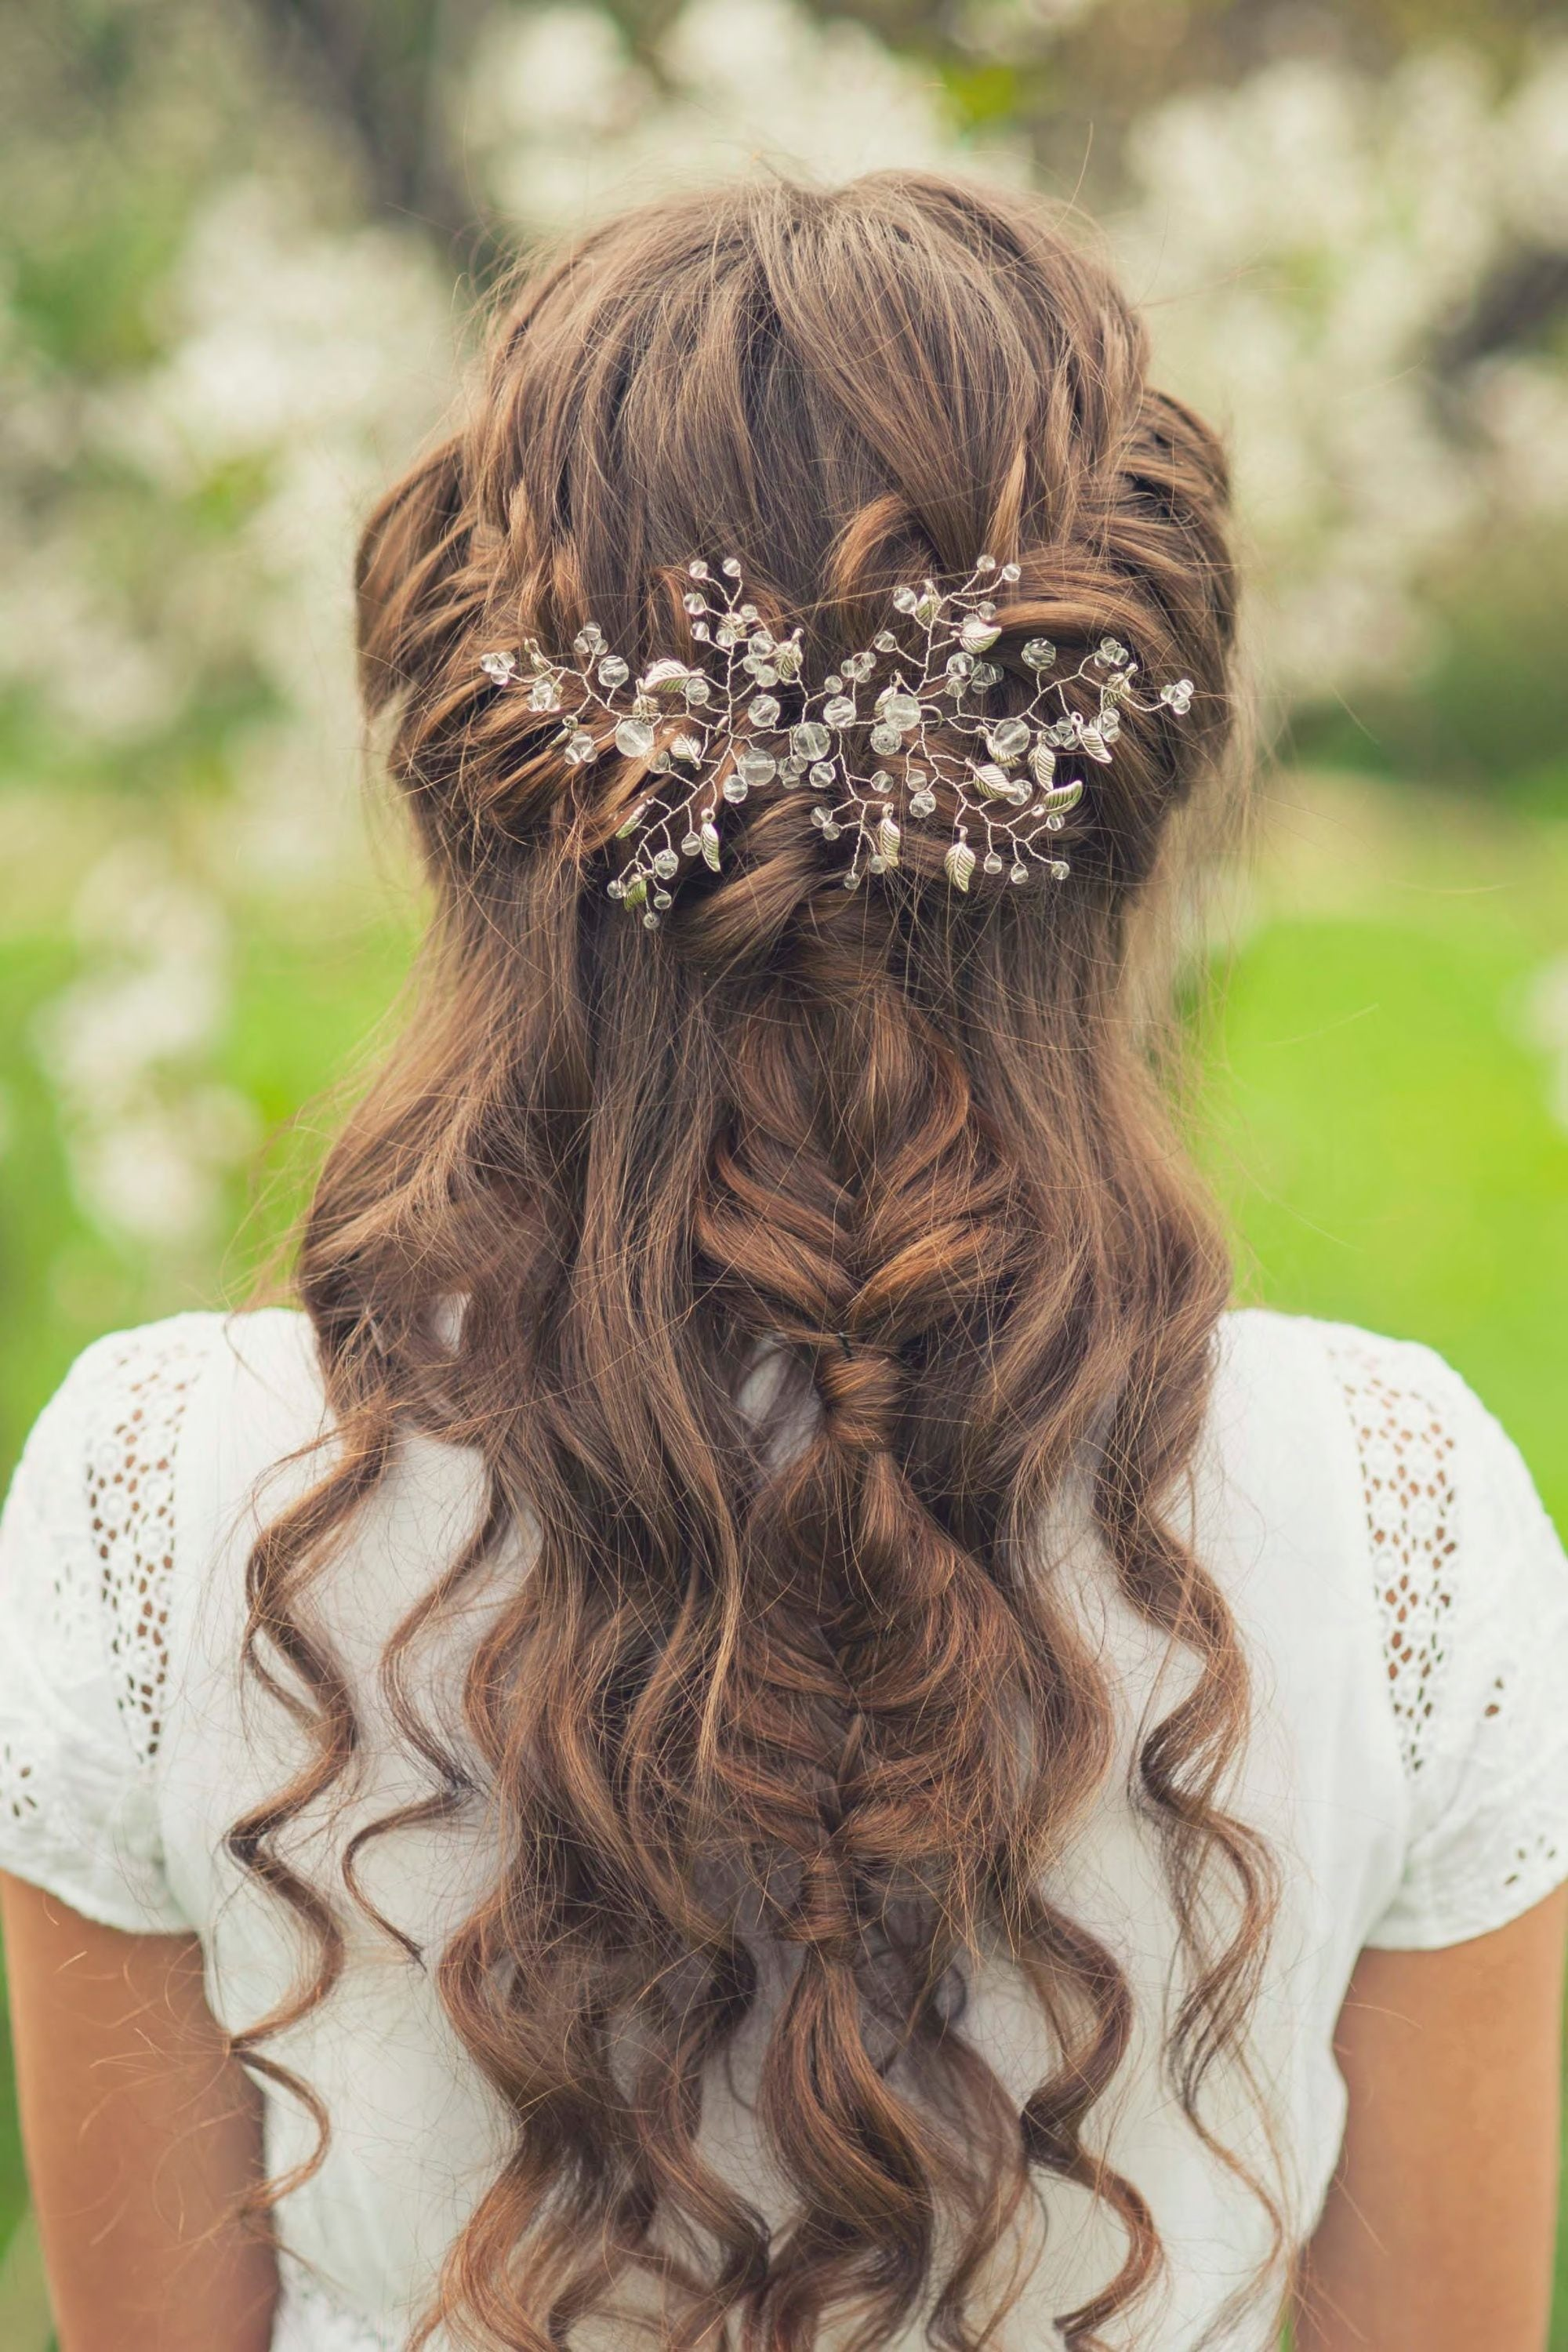 Bridal Hairstyles and Hair Ideas to Inspire Your Look on Your Wedding